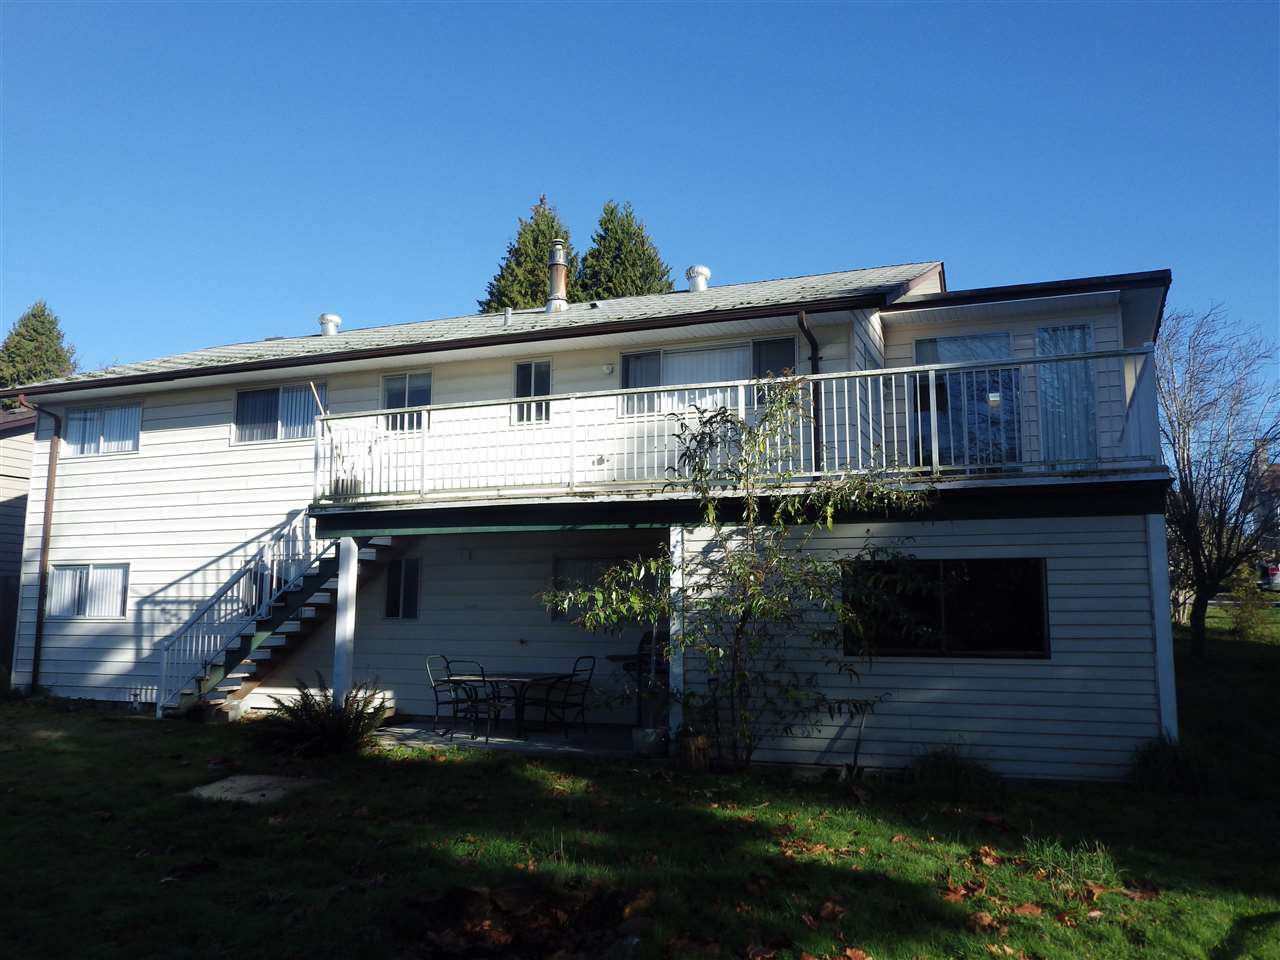 Photo 15: Photos: 4767 FIR Road in Sechelt: Sechelt District House for sale (Sunshine Coast)  : MLS®# R2342148